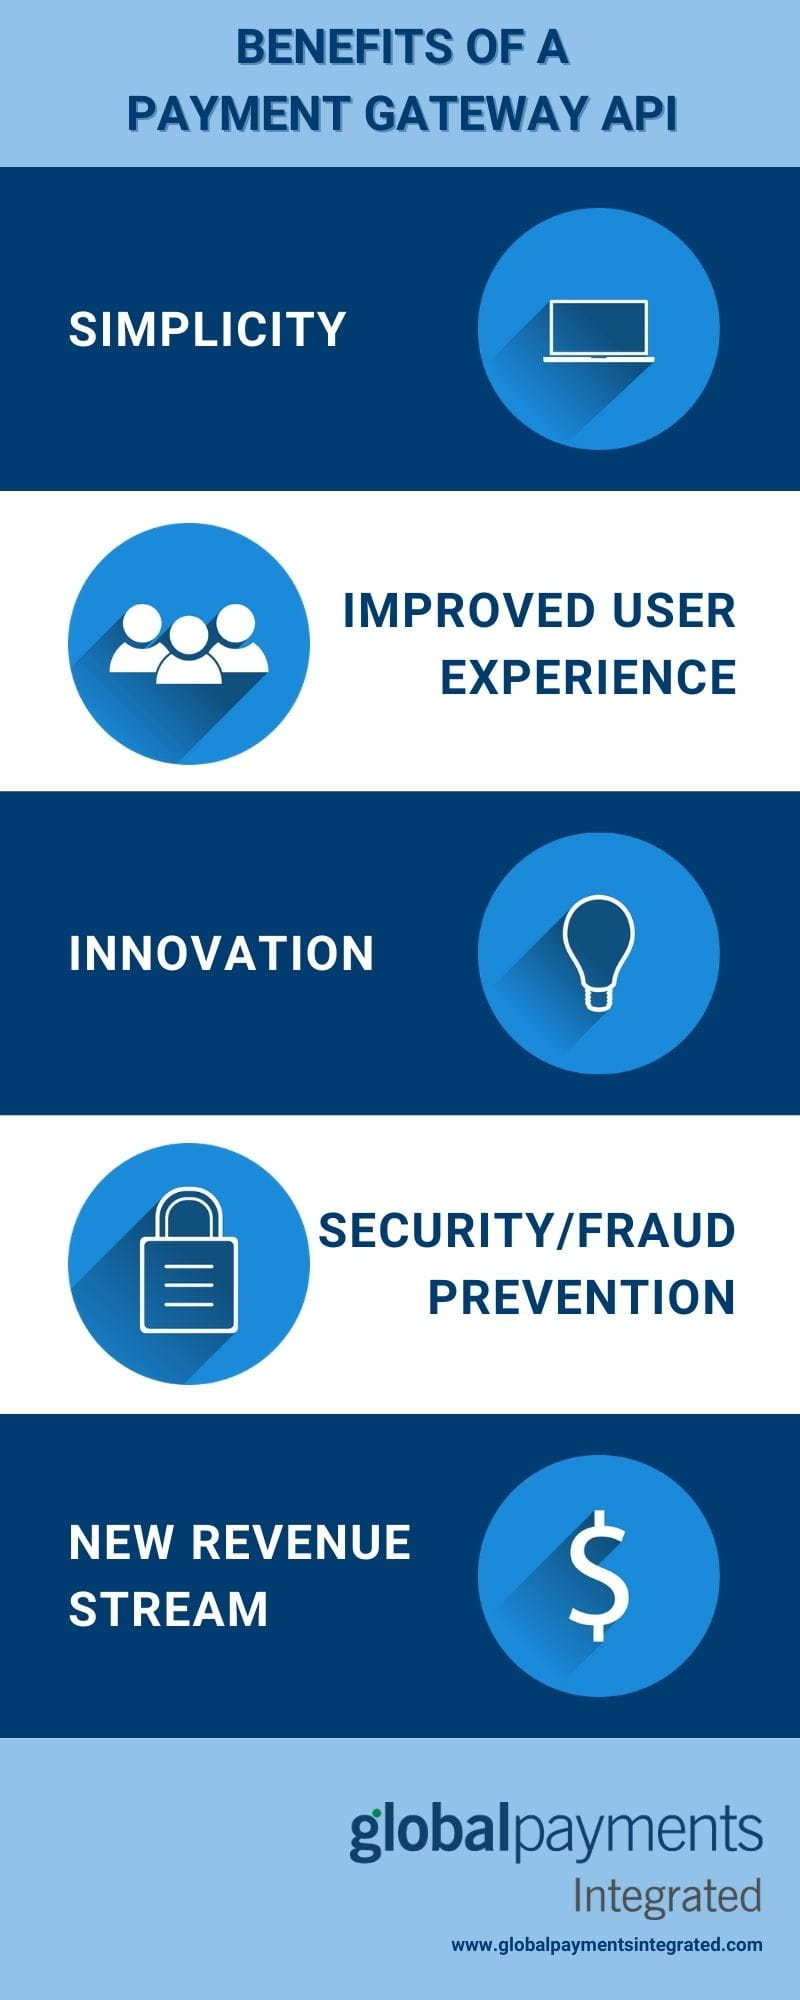 Benefits of a payment gateway API infographic